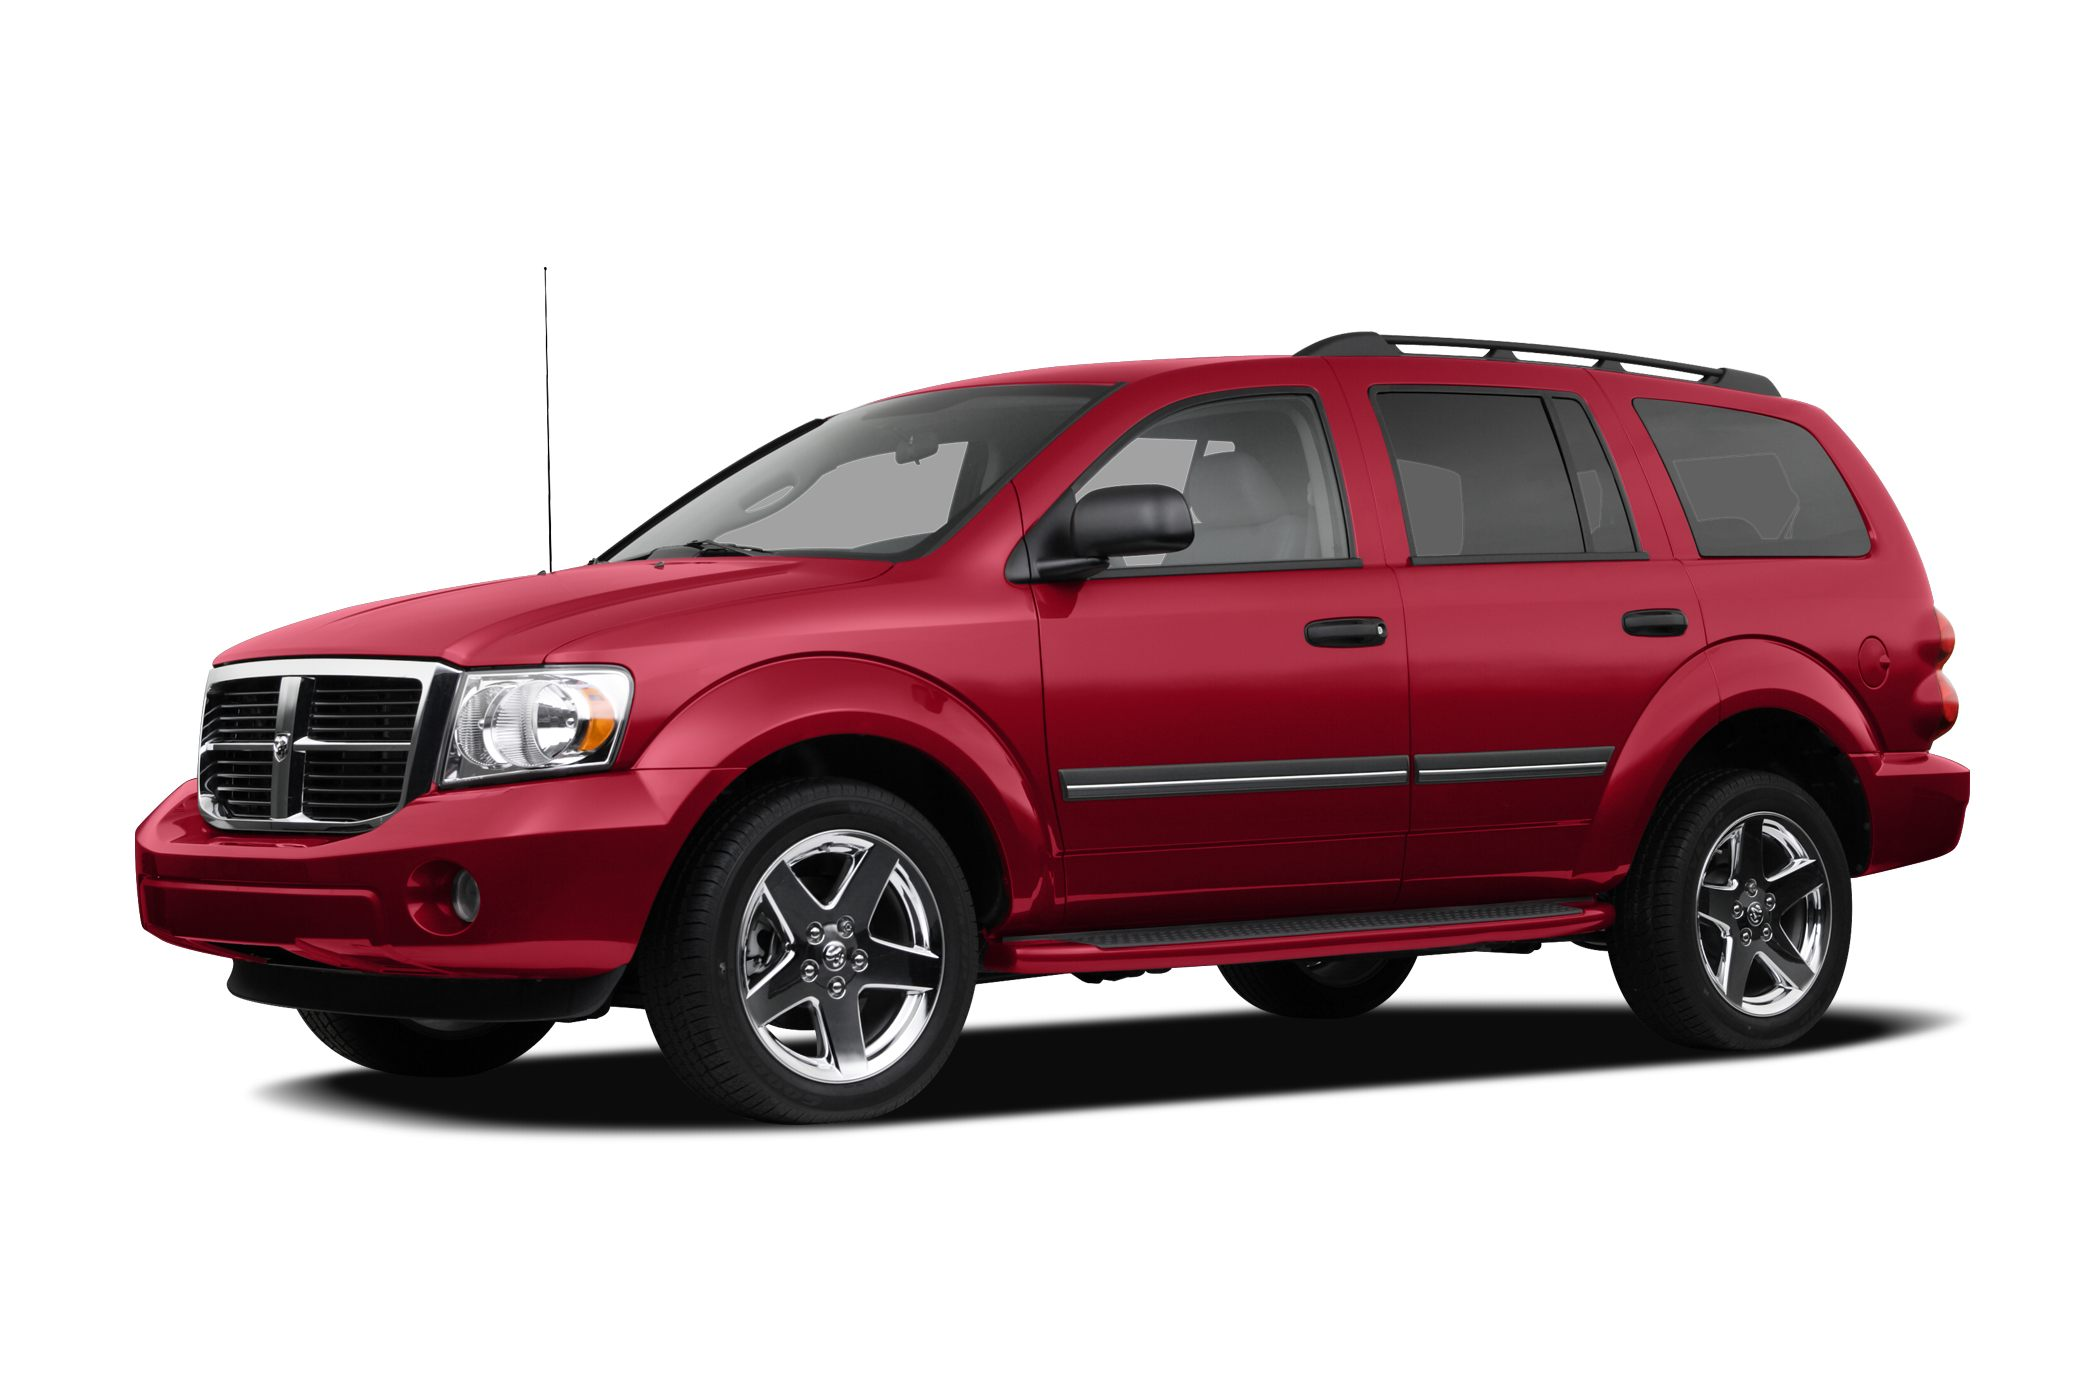 2007 Dodge Durango SLT SUV for sale in Brunswick for $11,900 with 151,231 miles